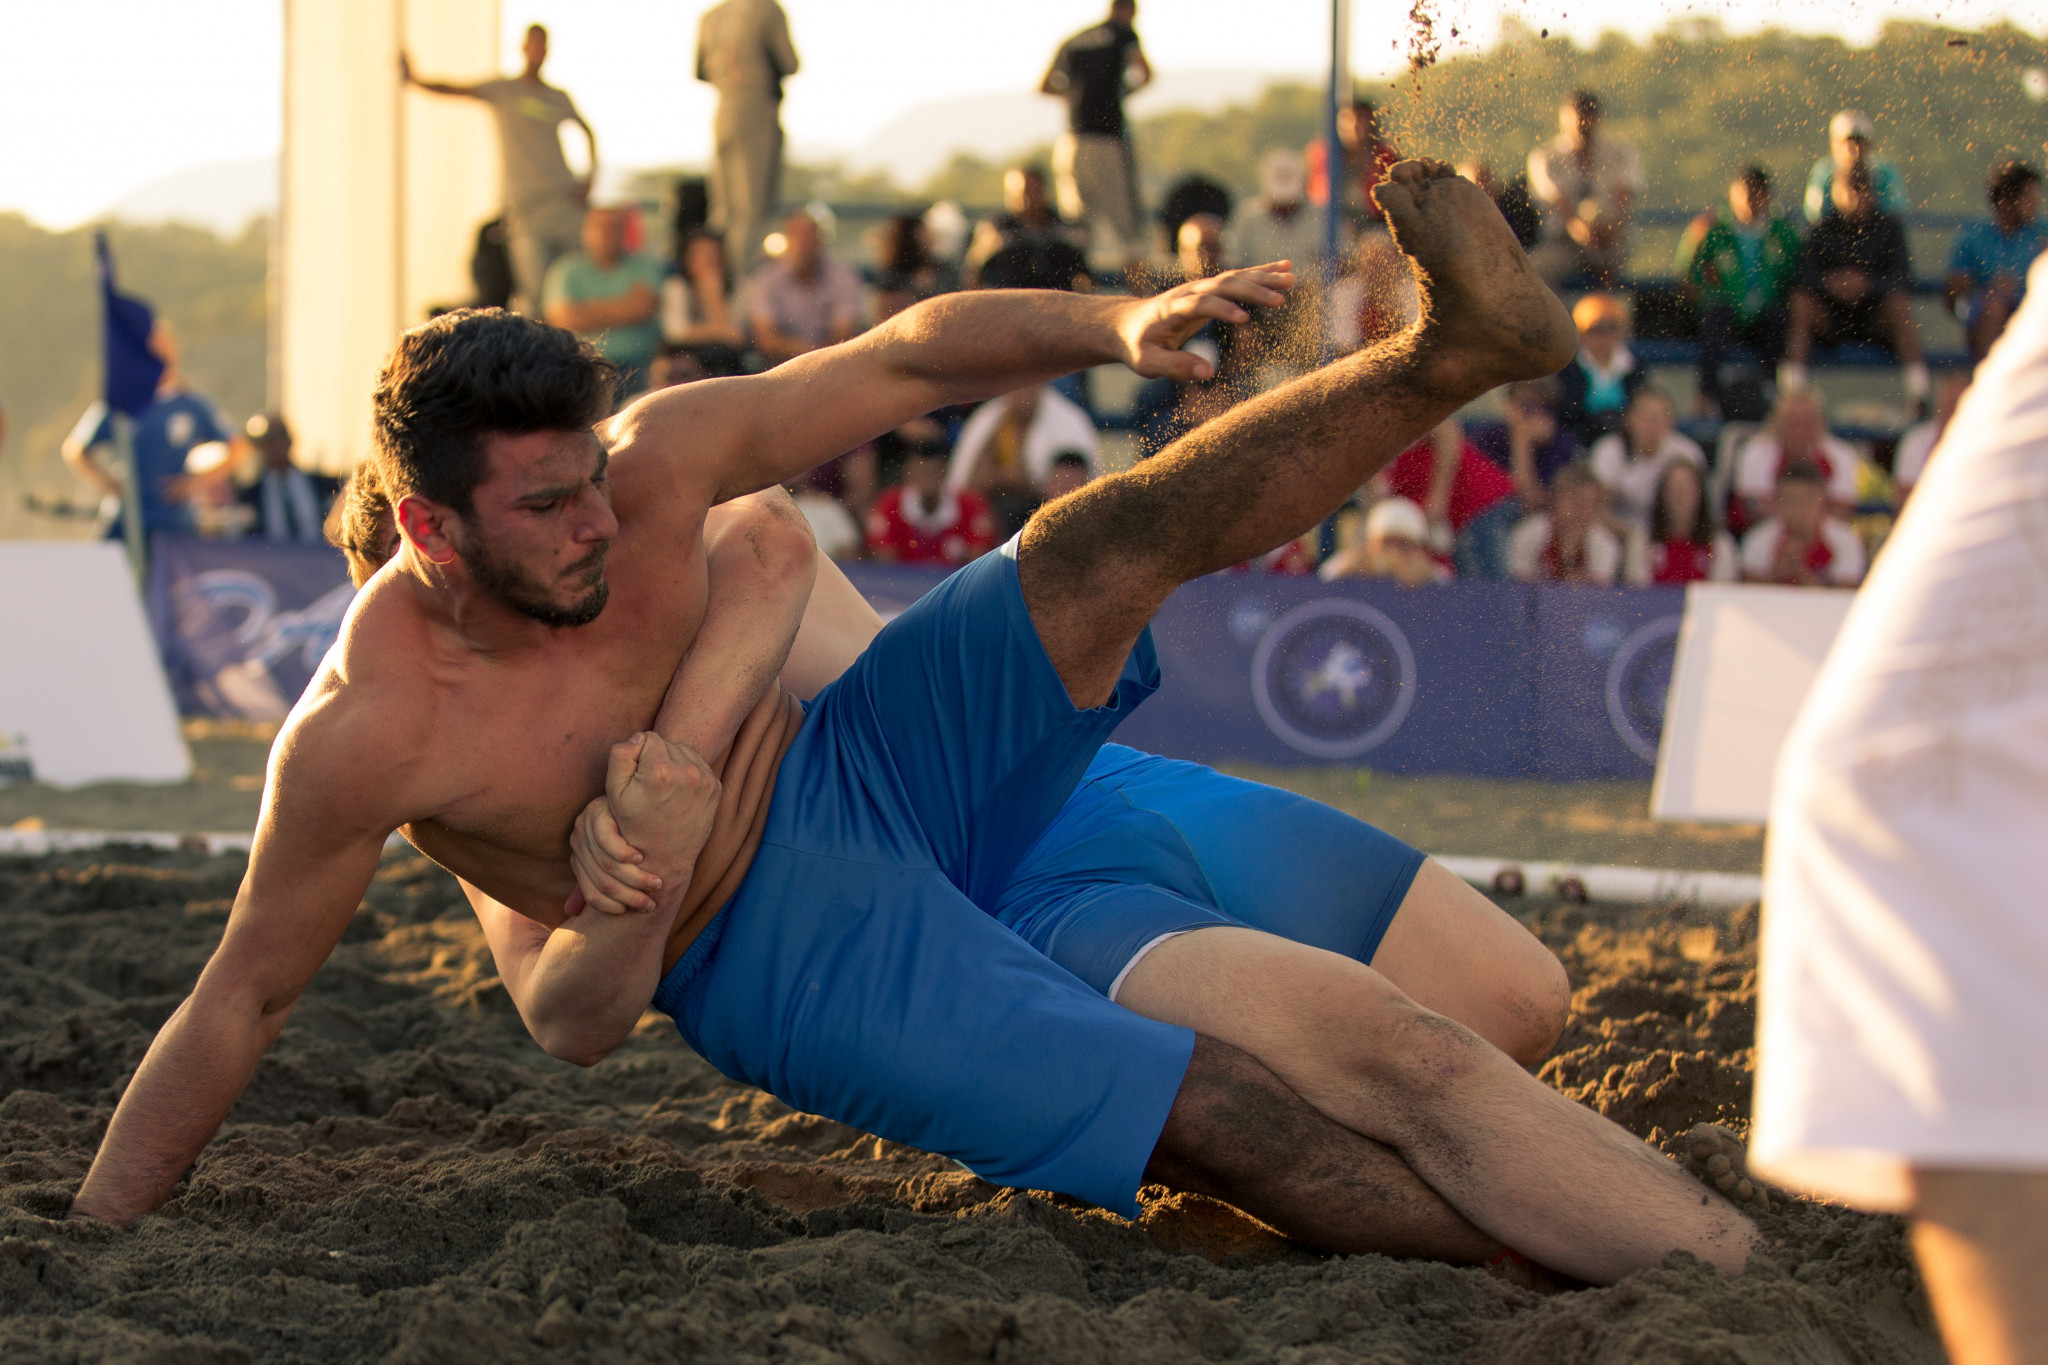 UWW launch Beach Wrestling World Series to promote inclusion of discipline at multi-sport events